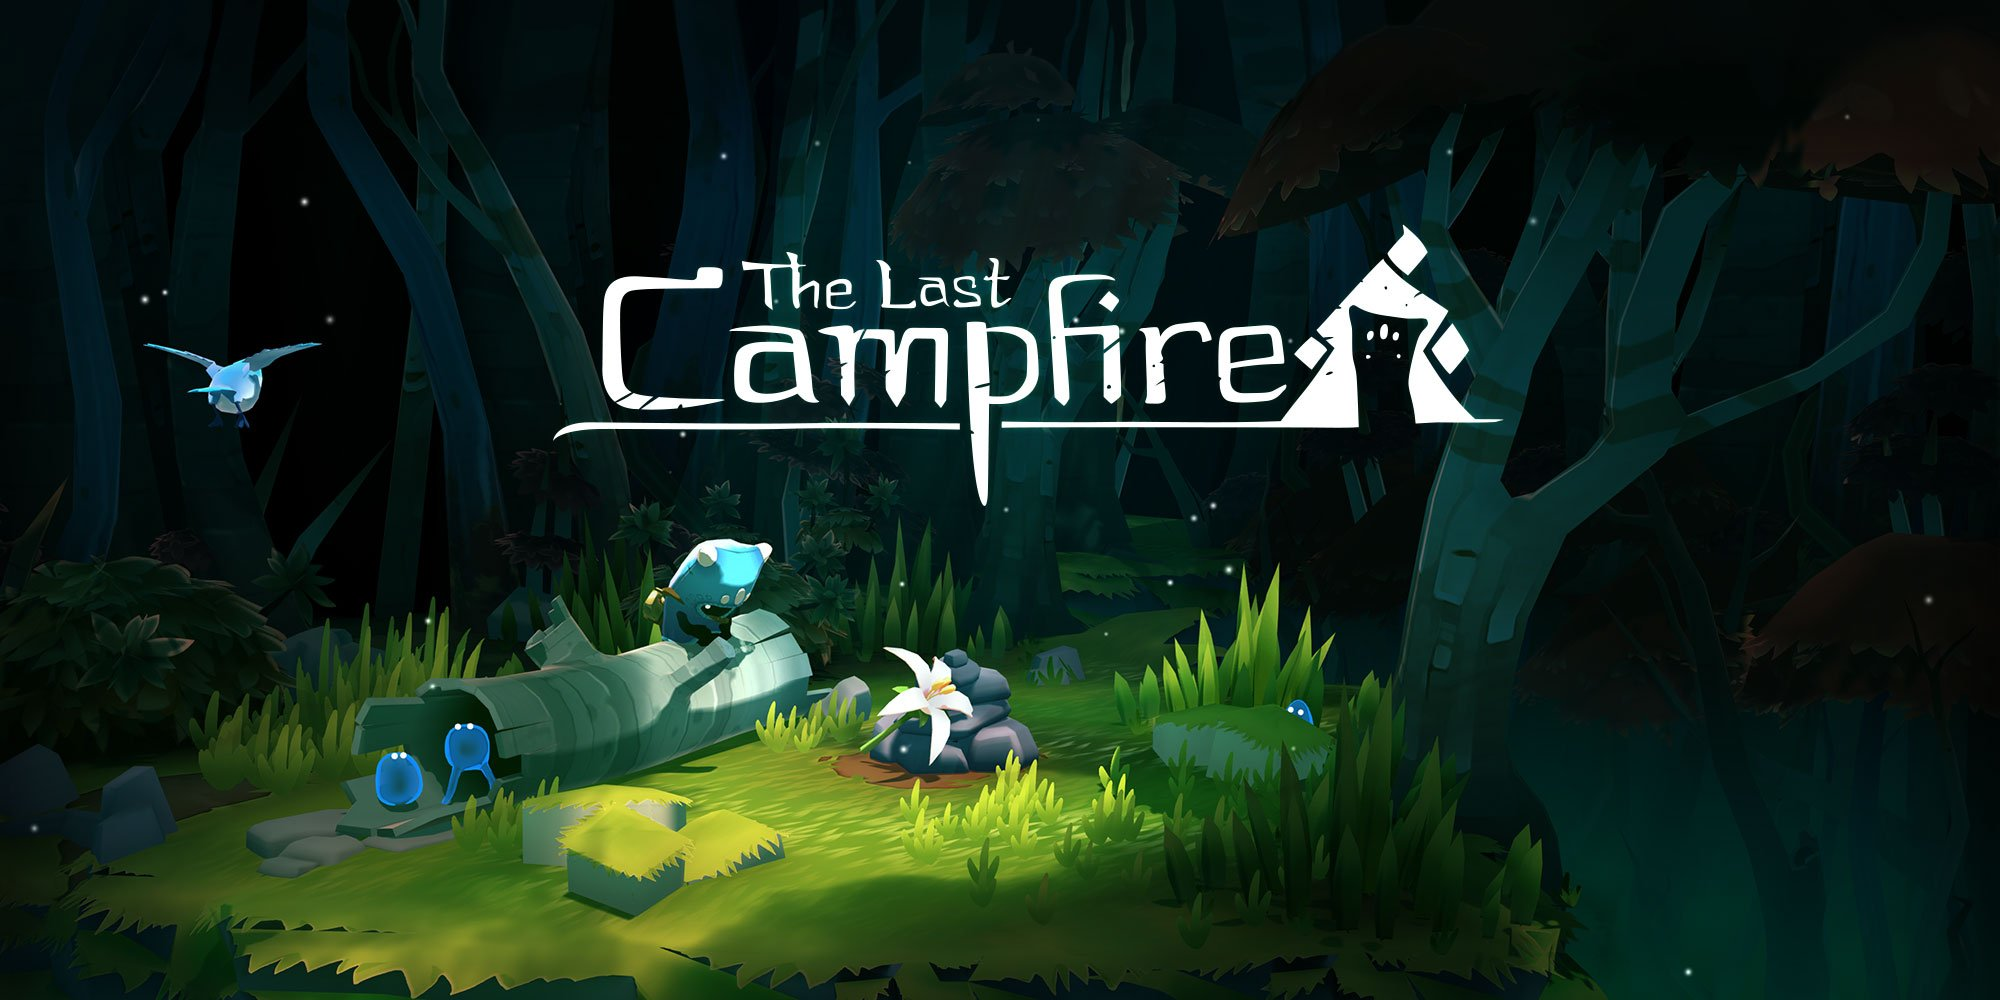 H2x1_NSwitchDS_TheLastCampfire.jpg